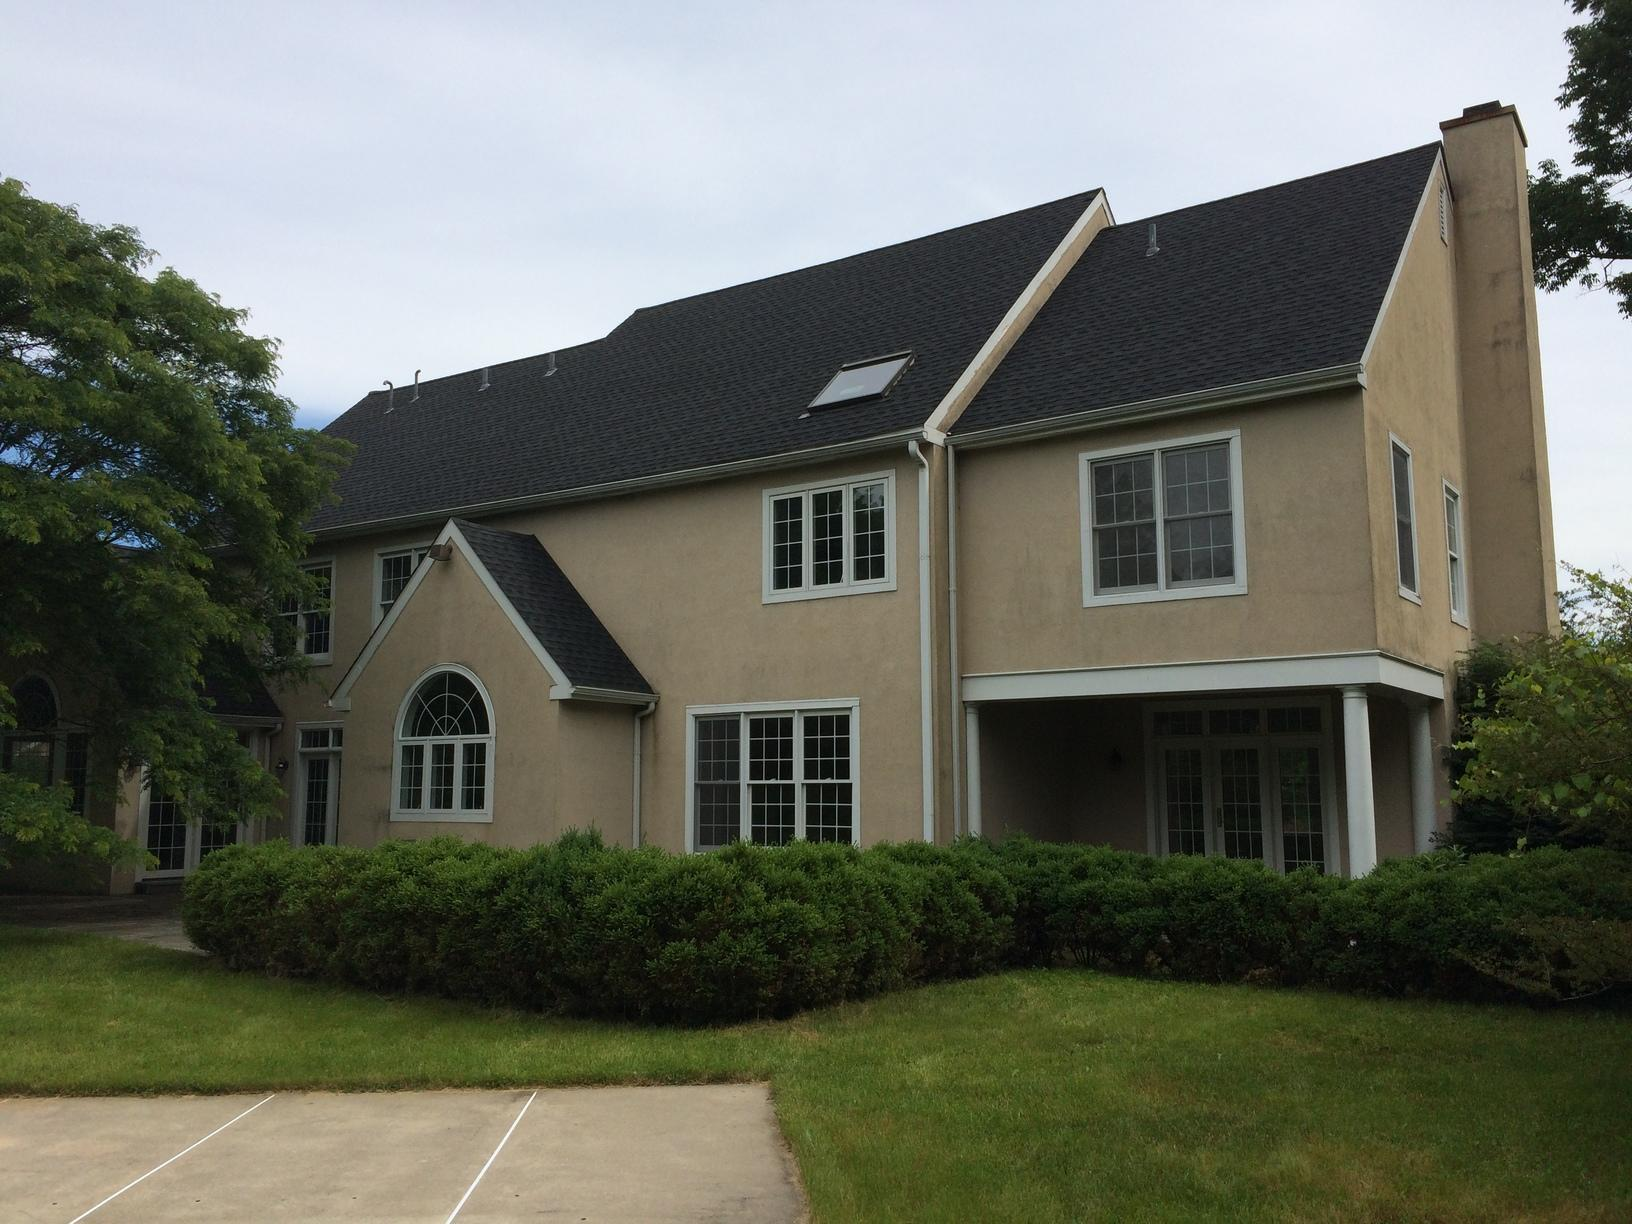 James Hardie Fiber Cement Planks and Stucco Replacement in Phoenixville, PA - Before Photo